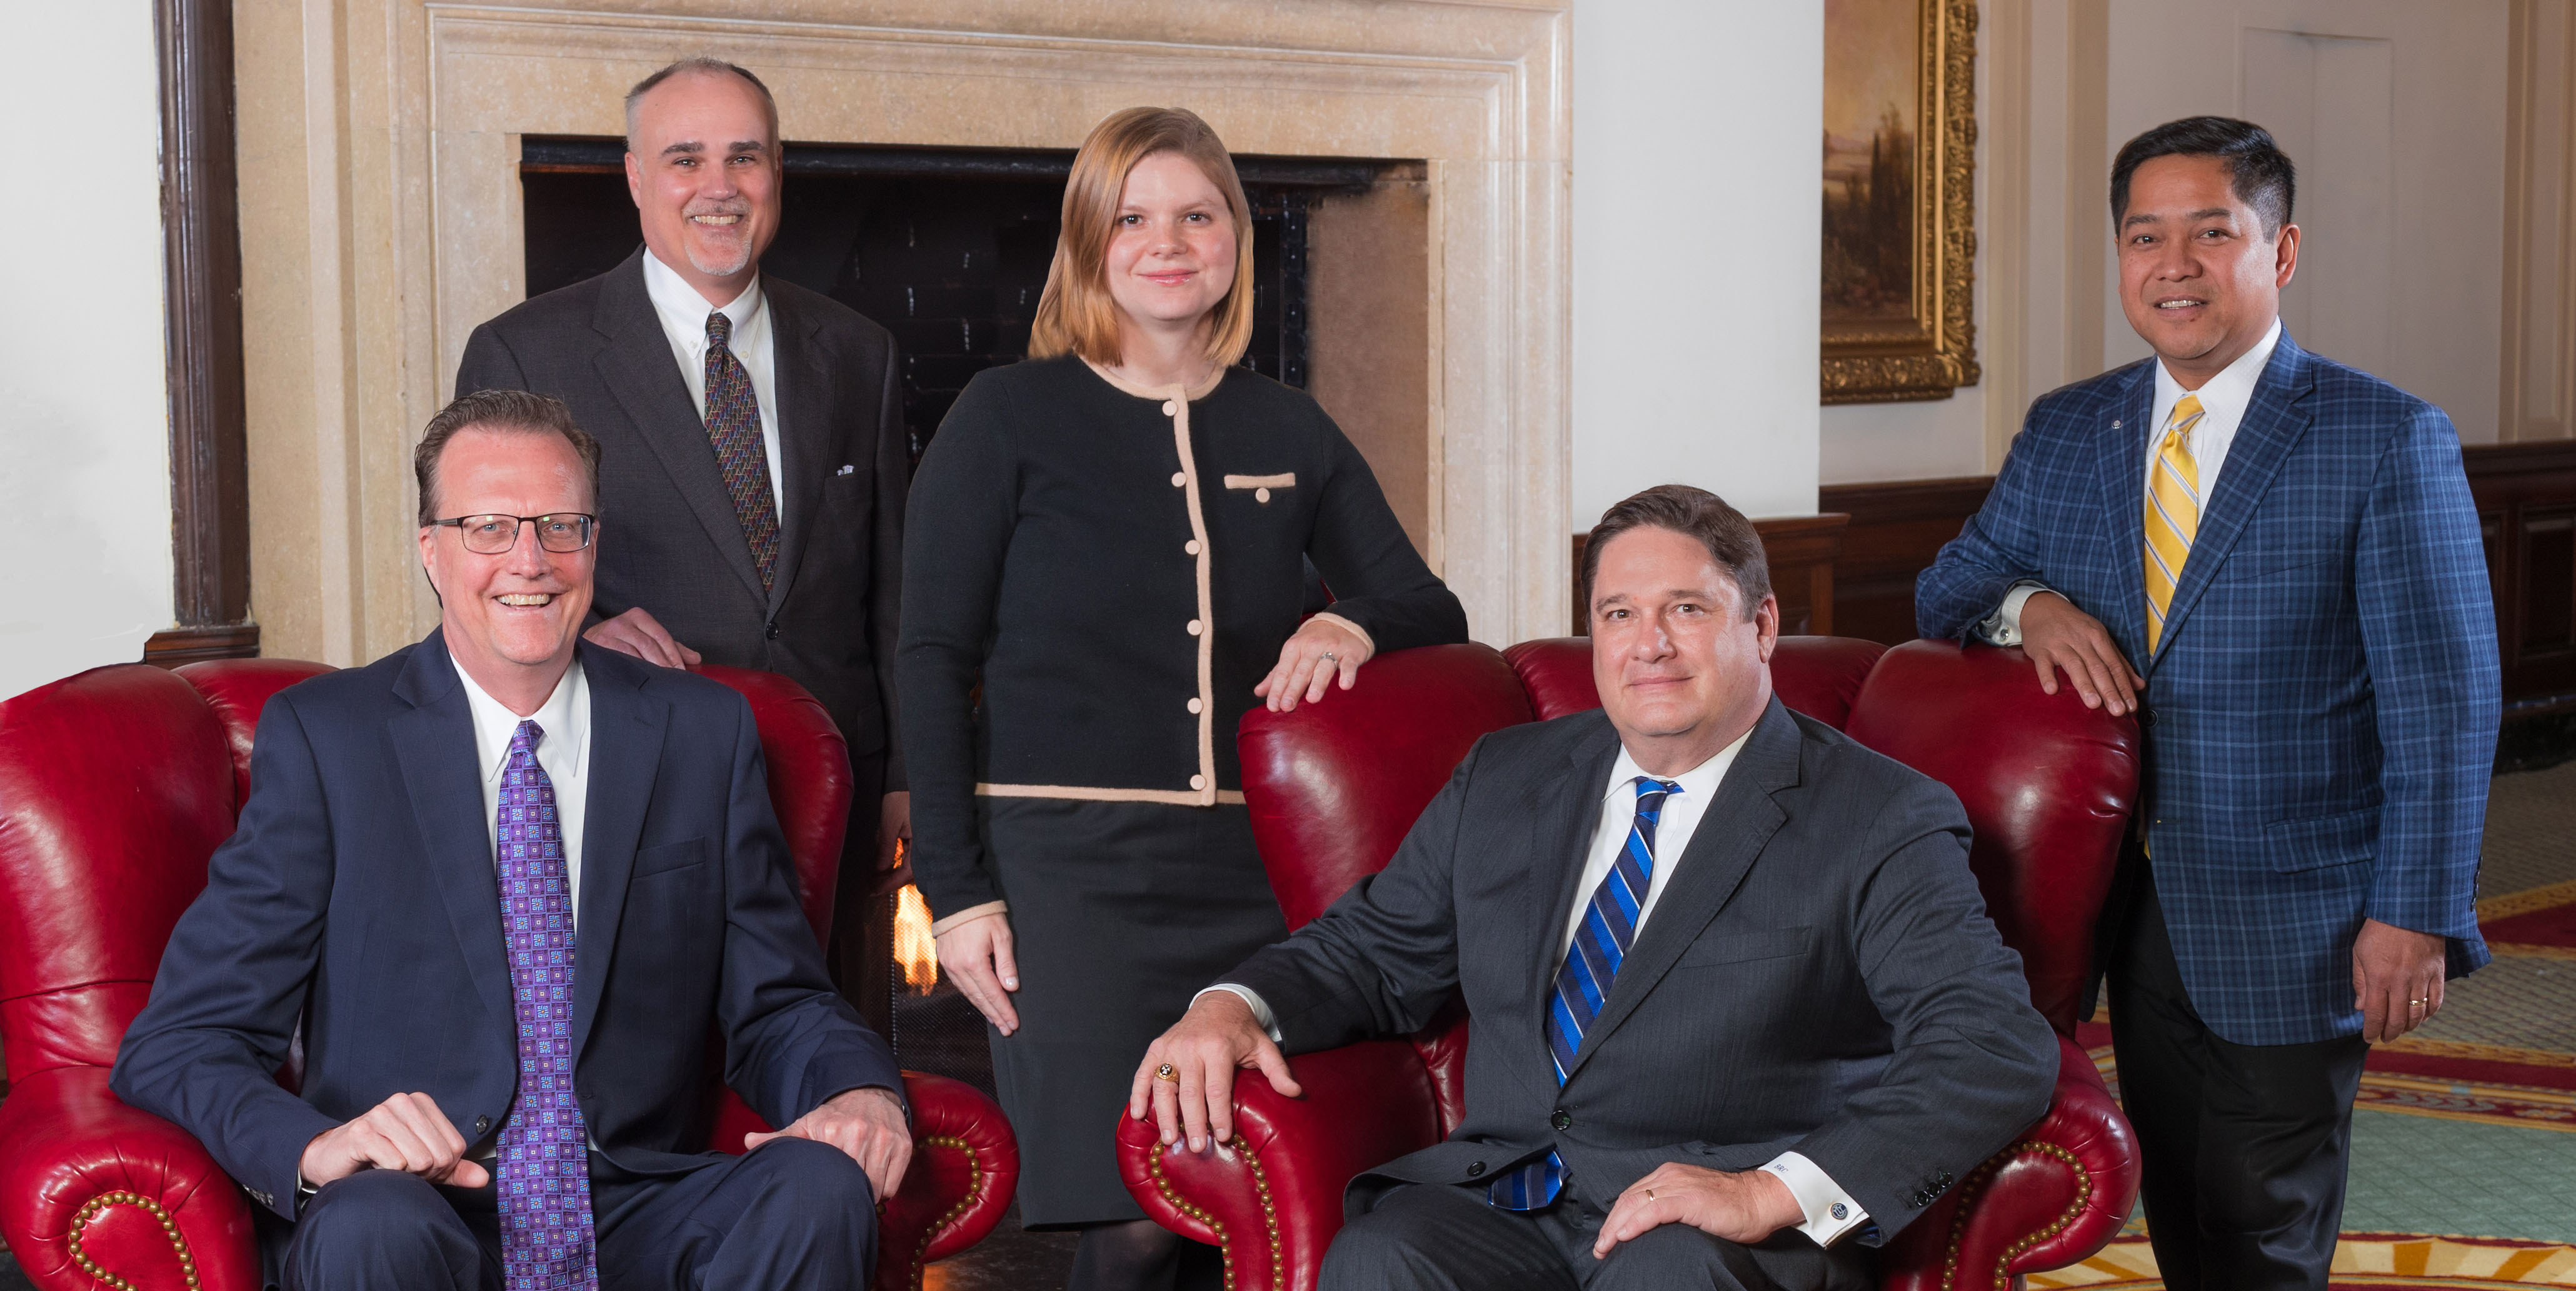 Health Search Partners, board of directors, Union League Club, Chicago